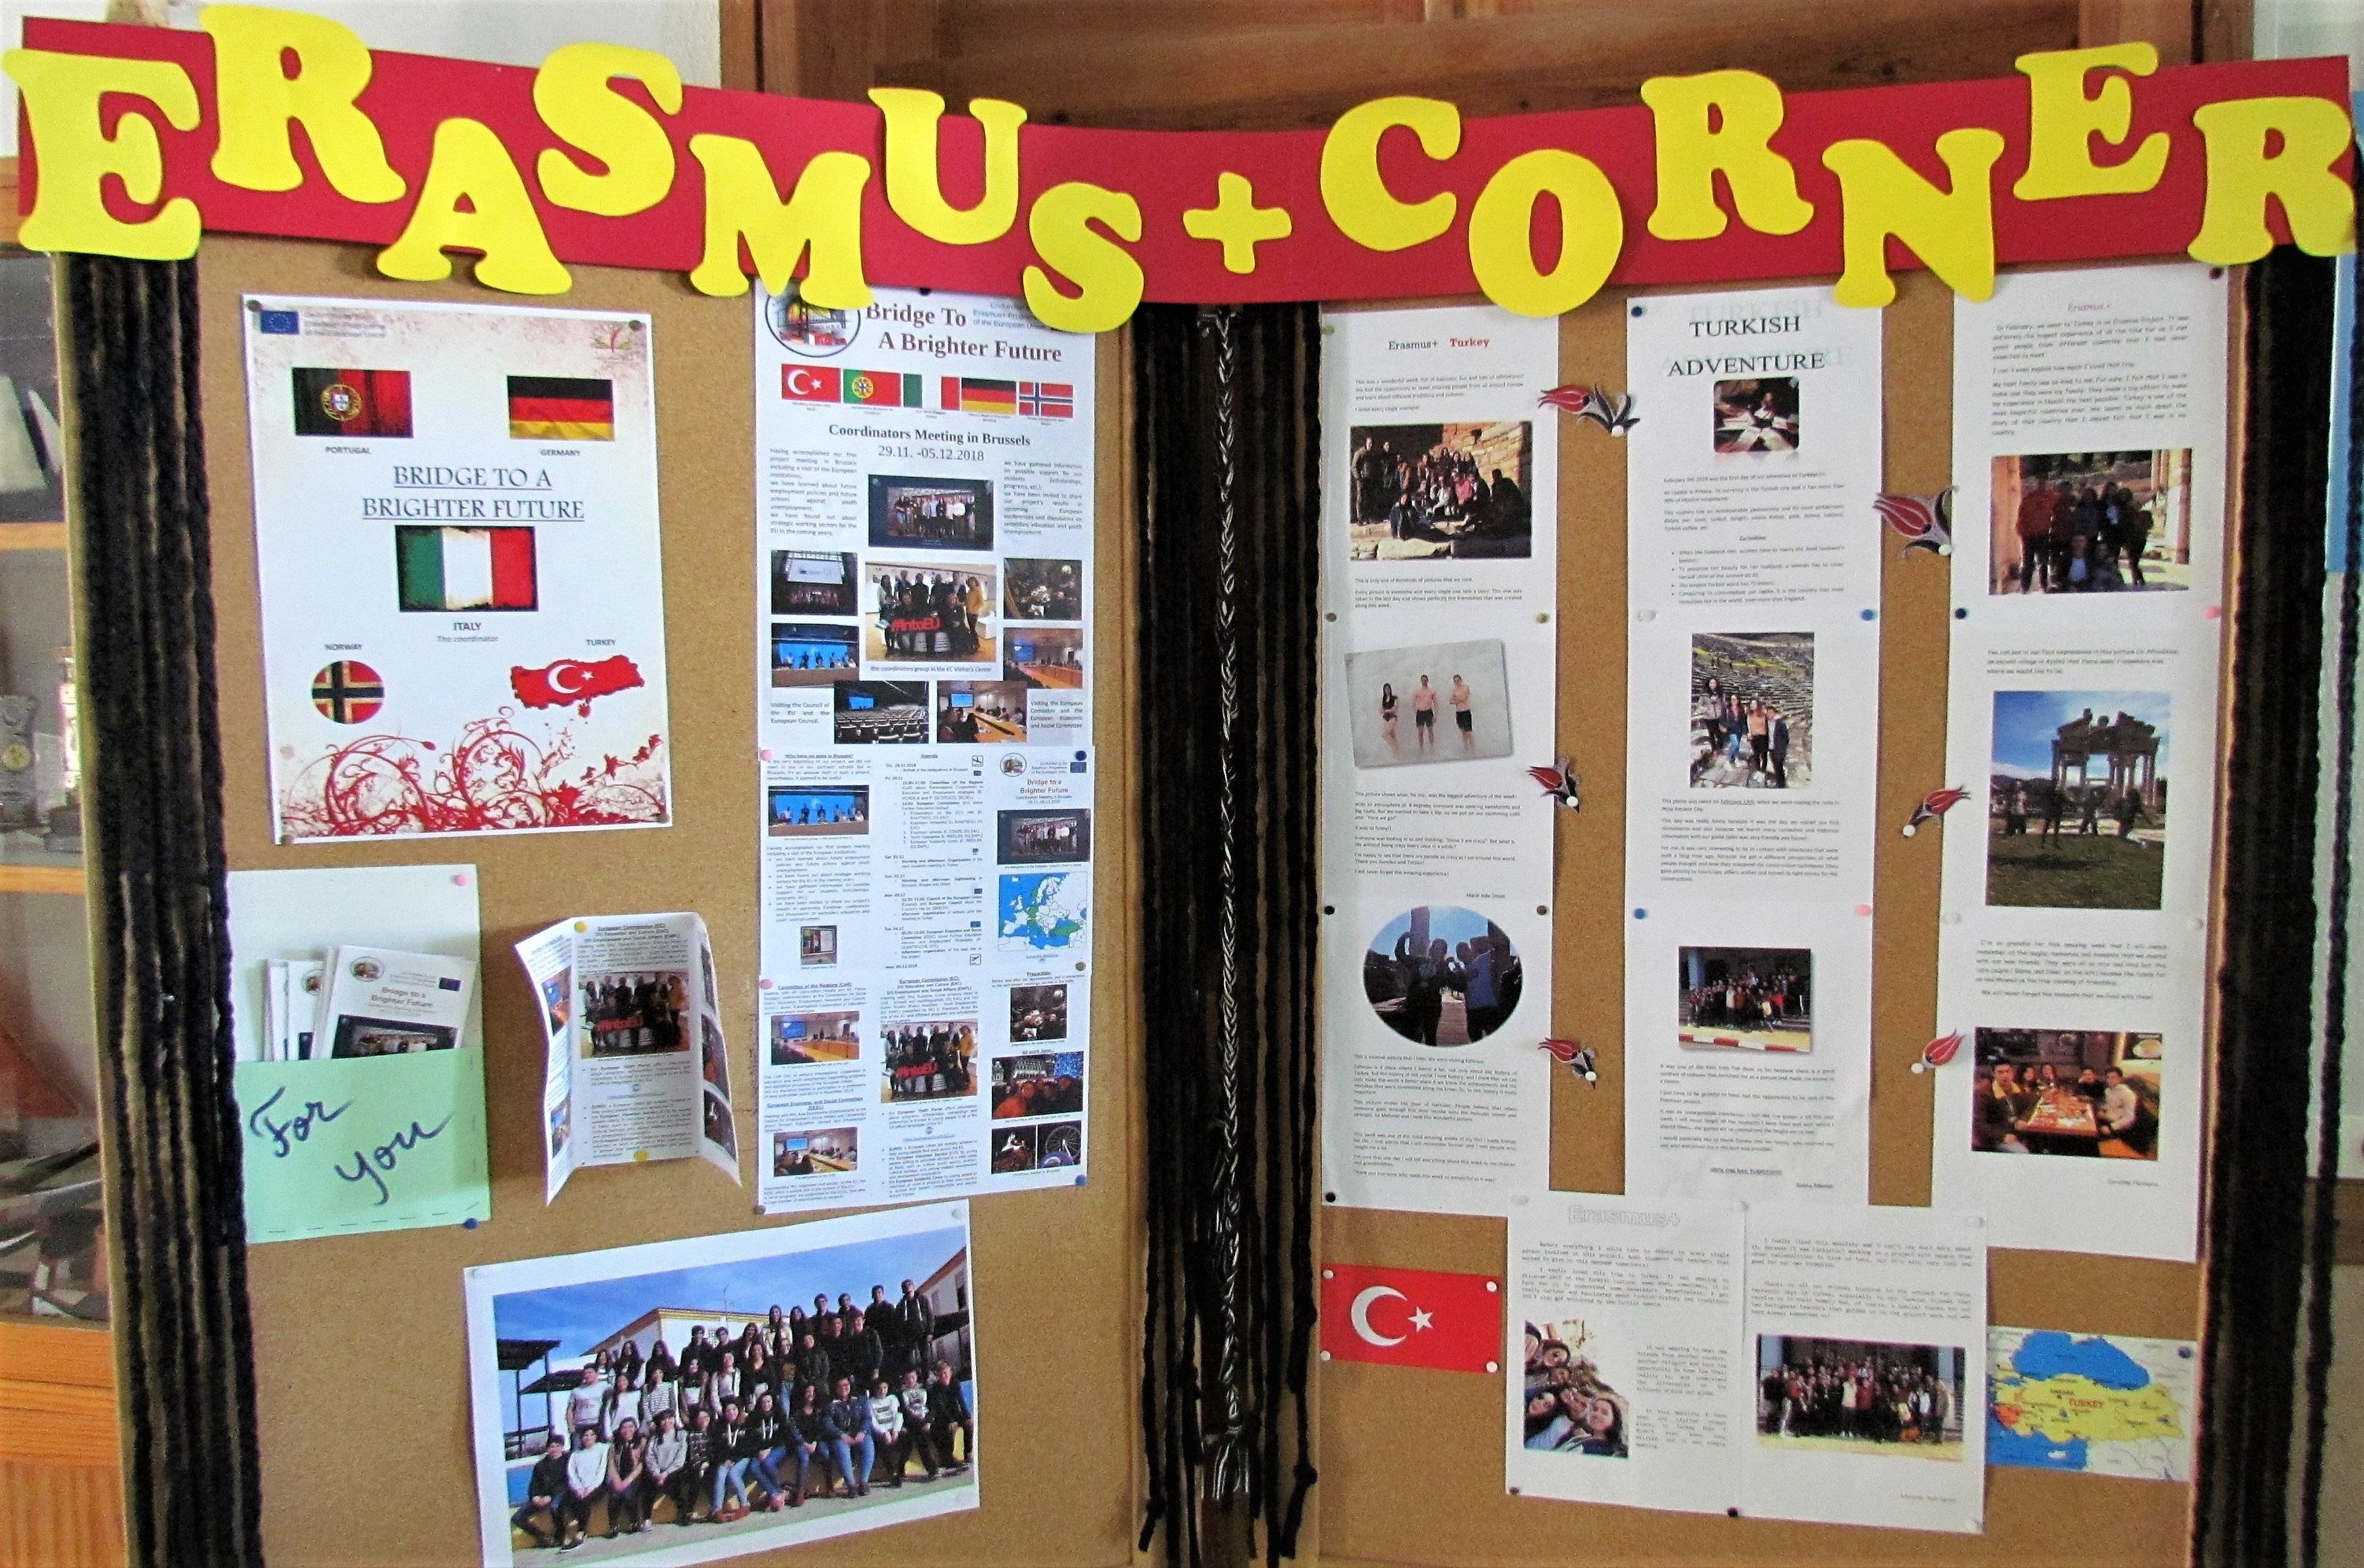 The Erasmus corner in the school